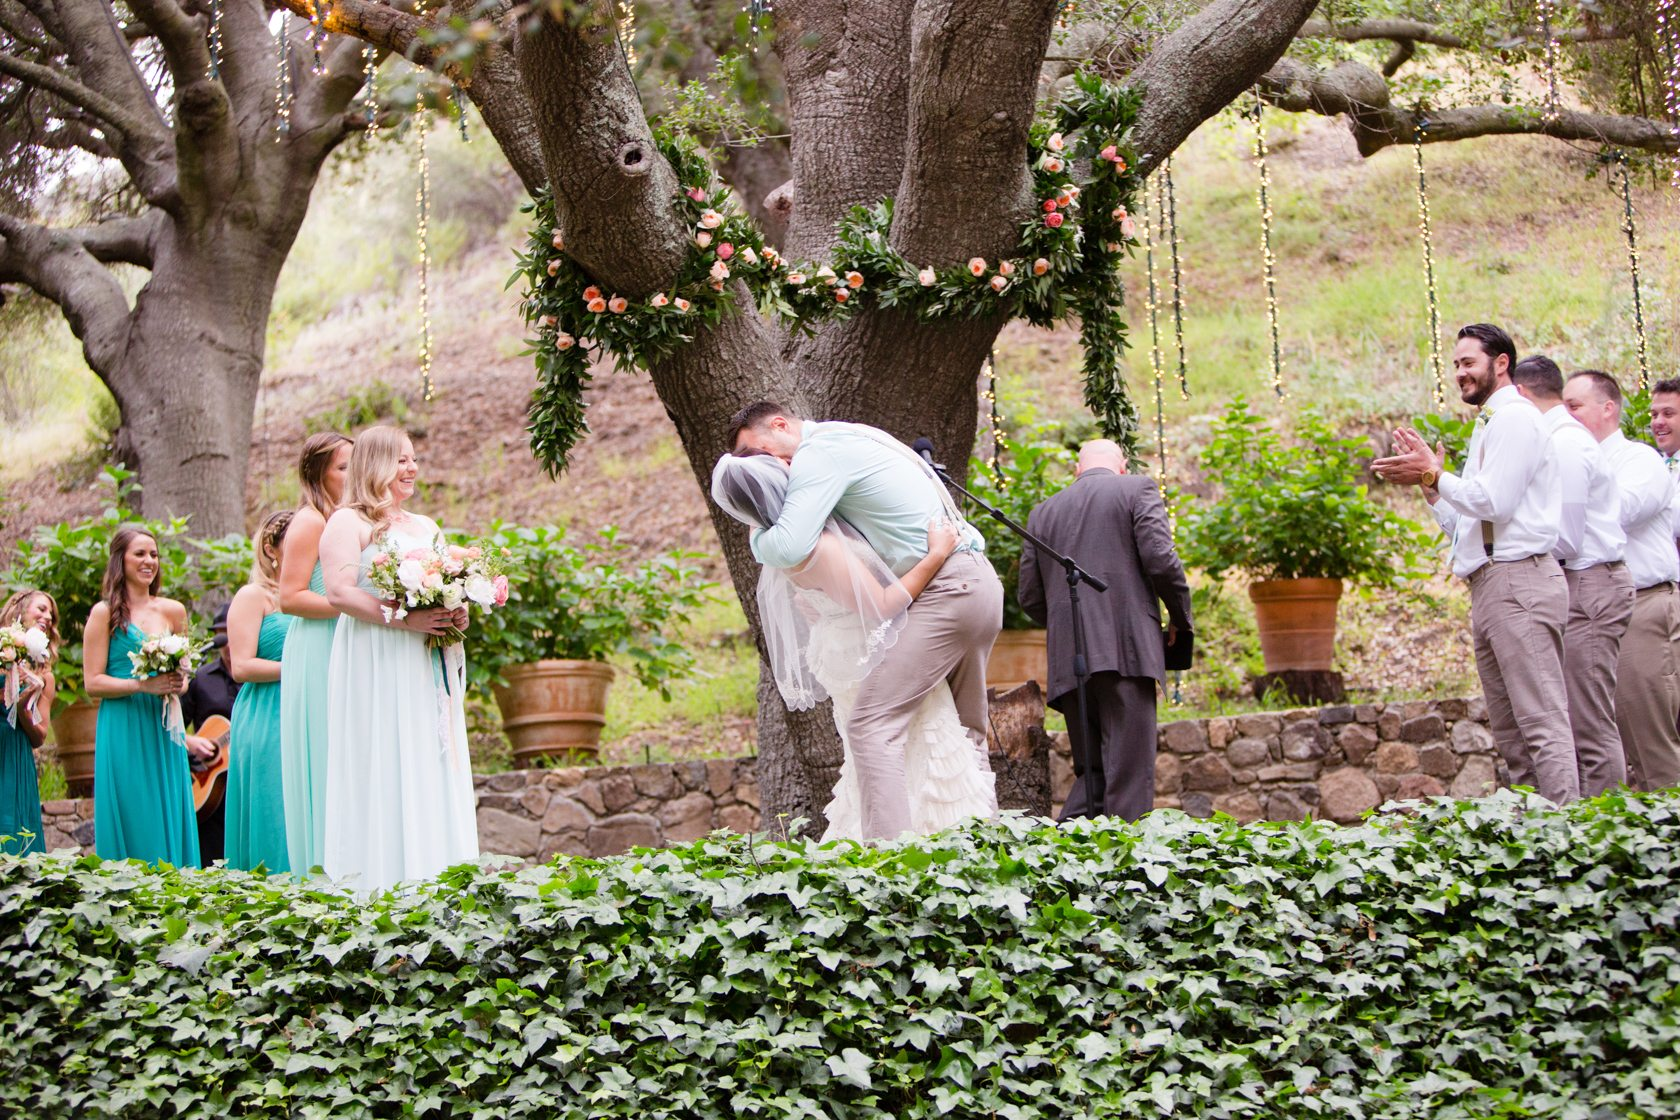 The_Printed_Palette_Wedding_at_Calamigos_Ranch_078.jpg